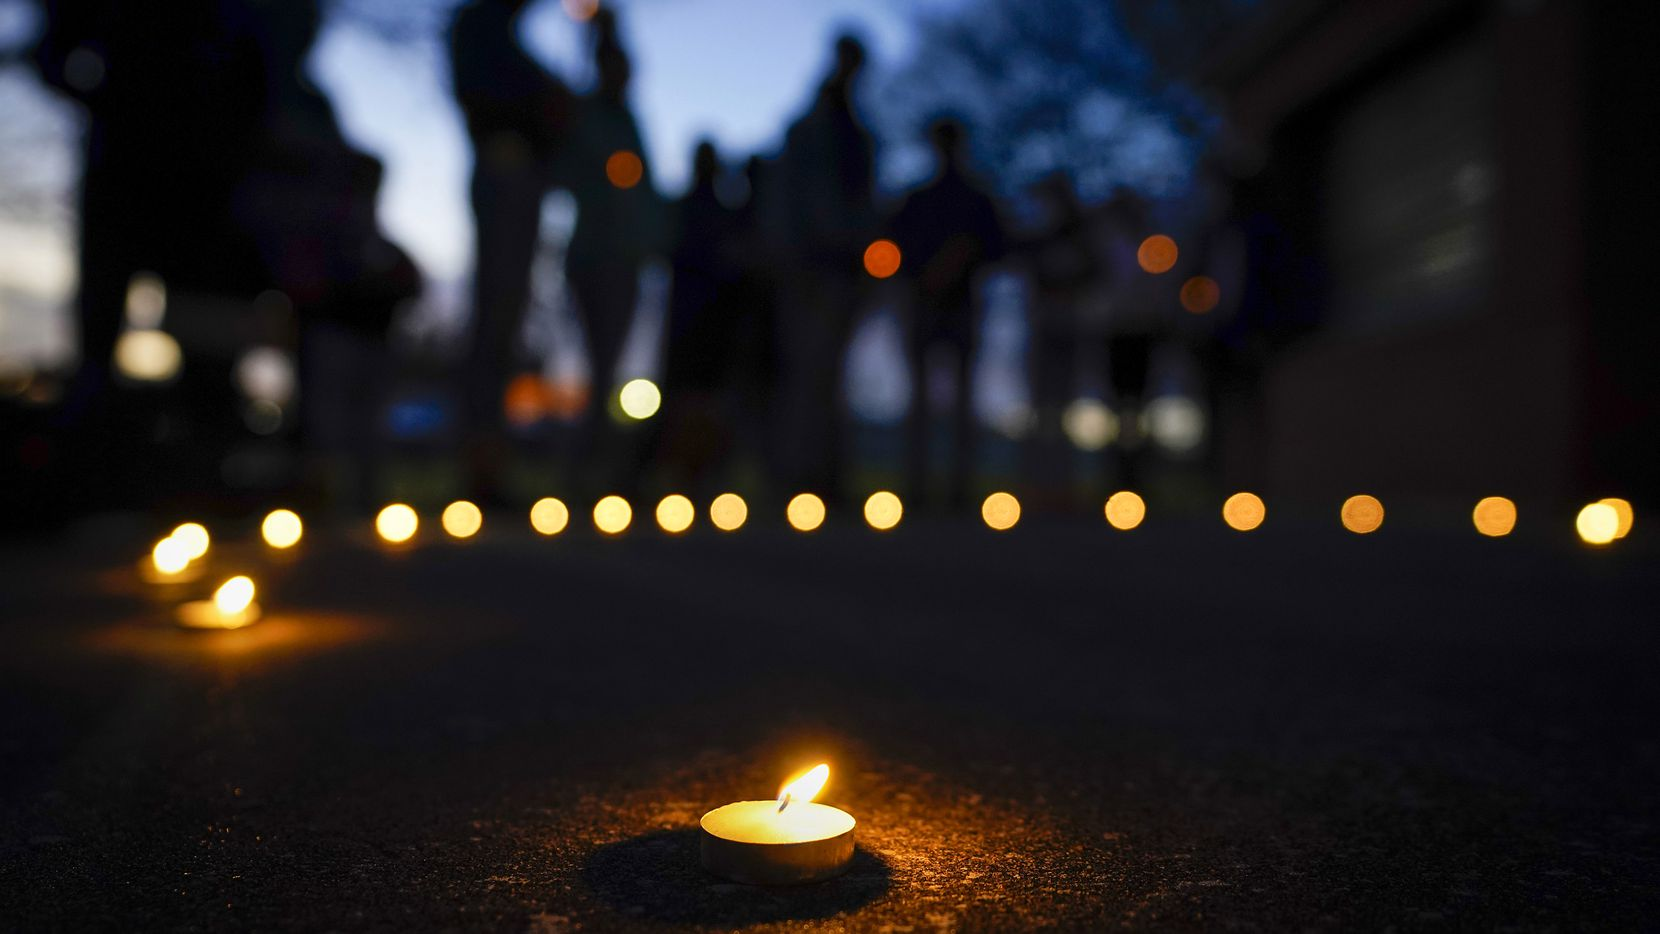 """Mourners gather for a vigil for Marc """"Flea"""" Strickland, the 18-year-old victim of a shooting at Dallas ISD basketball game, as the sun sets at Bushman Park on Sunday, Jan. 19, 2020."""